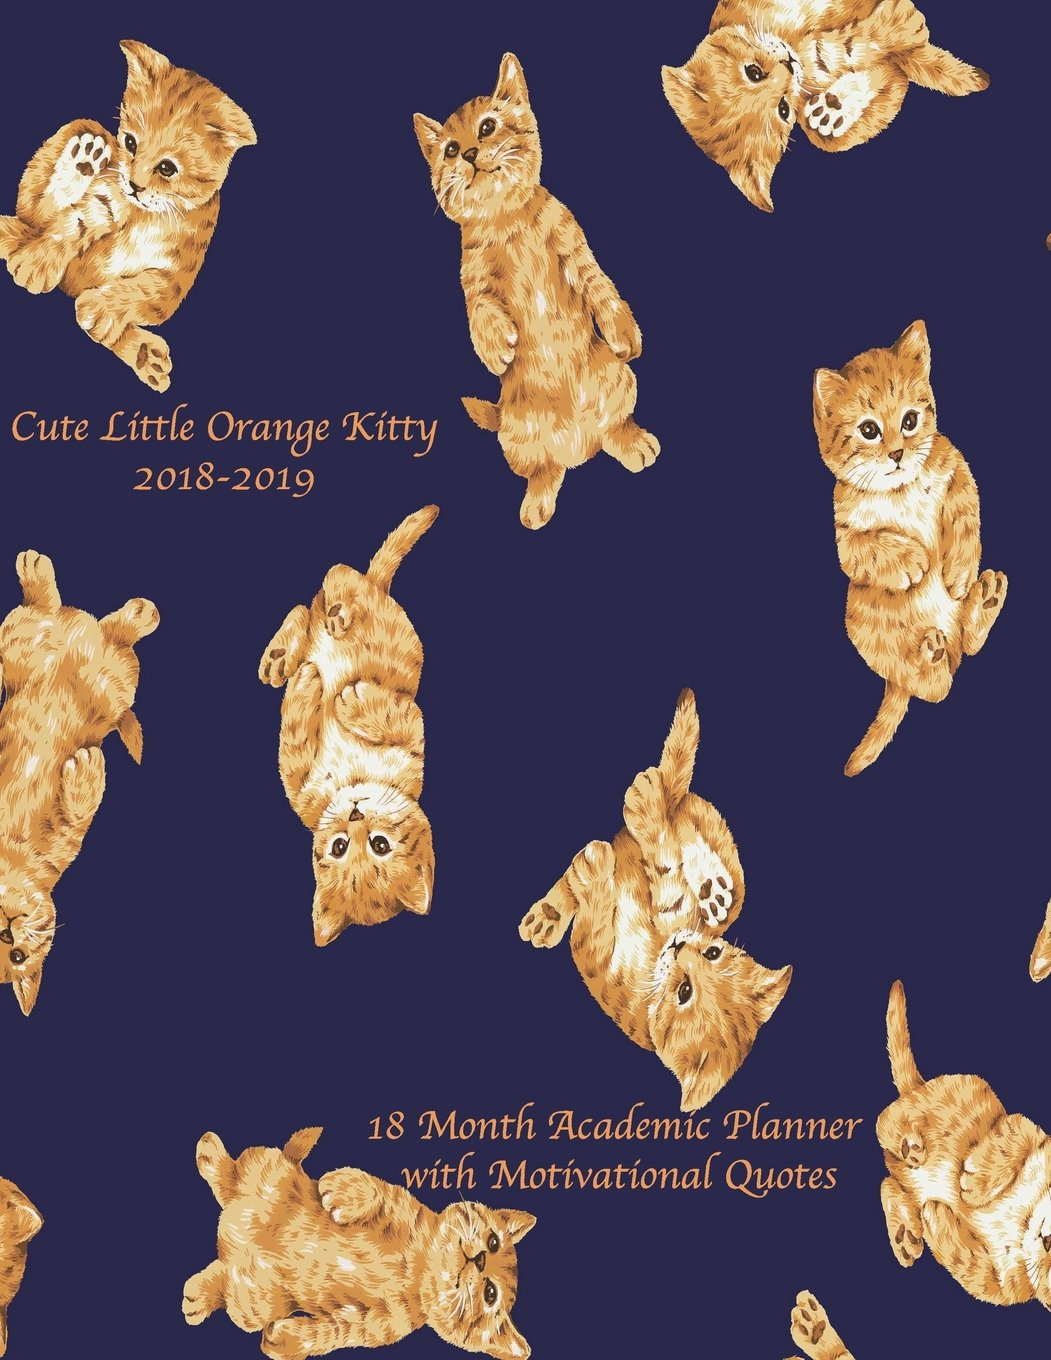 Cute Little Orange Kitty 2018-2019 18 Month Academic Planner: July 2018 To December 2019 Weekly and Monthly Large 8.5x11 Organizer with Motivational ... Motivational Quotes Planners) (Volume 35) pdf epub